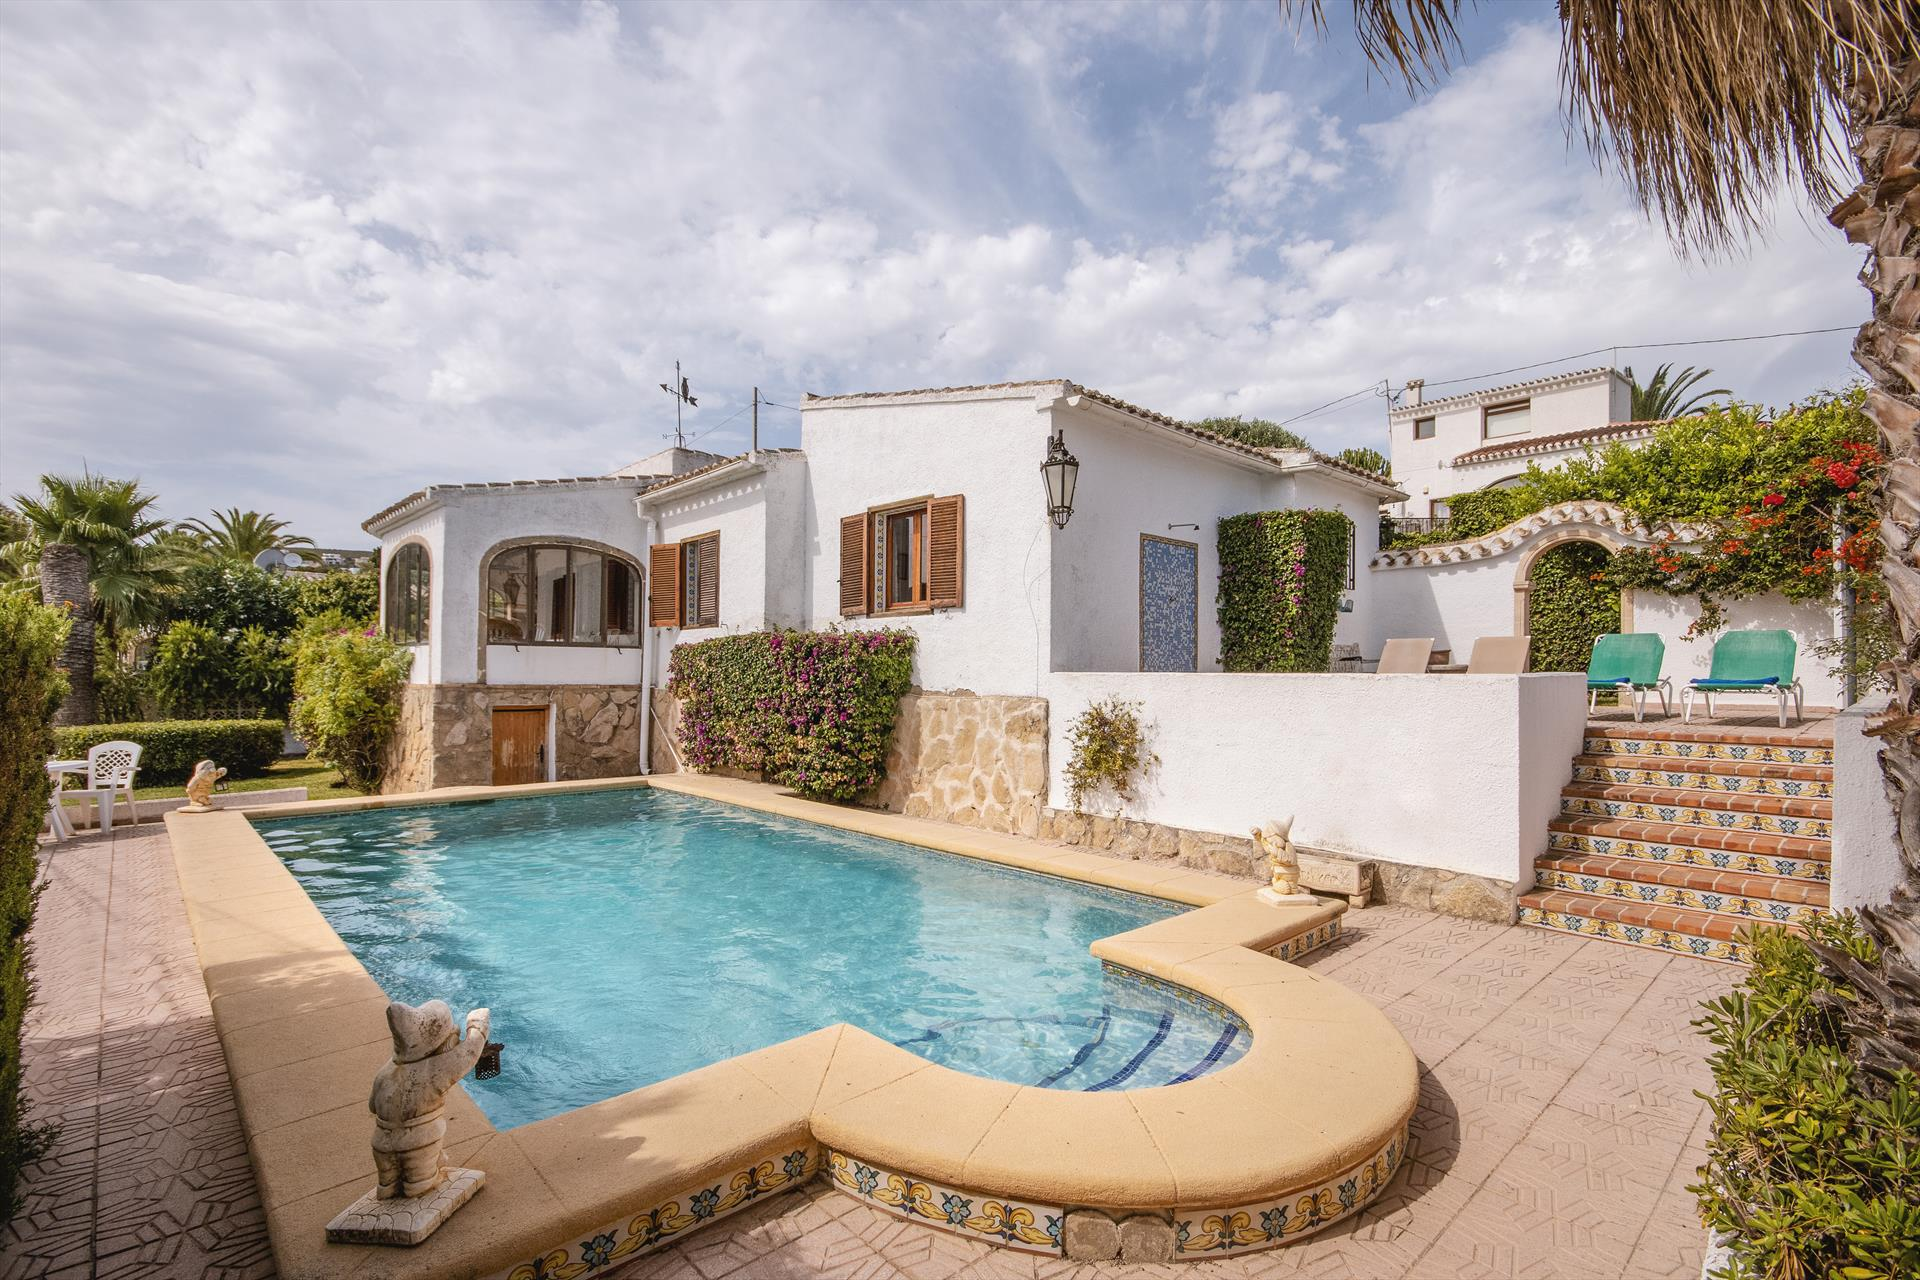 Rustica, Rustic and classic villa in Javea, on the Costa Blanca, Spain  with private pool for 6 persons...